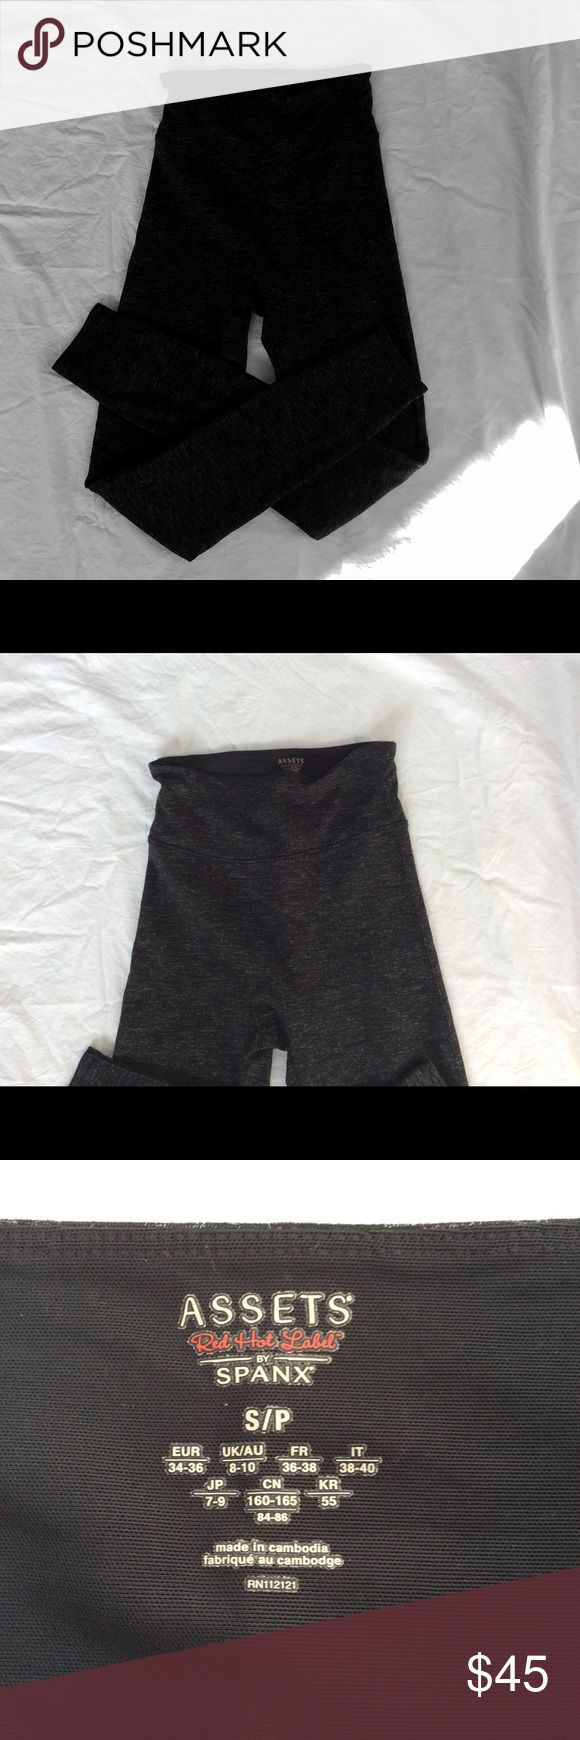 Spanx Dark Heather control leggings. NWOT Red Hot Label line.  High control waist, heavy weight.  Poly/Rayon/Elastane.  Perfect around town or in class. SPANX Pants Leggings